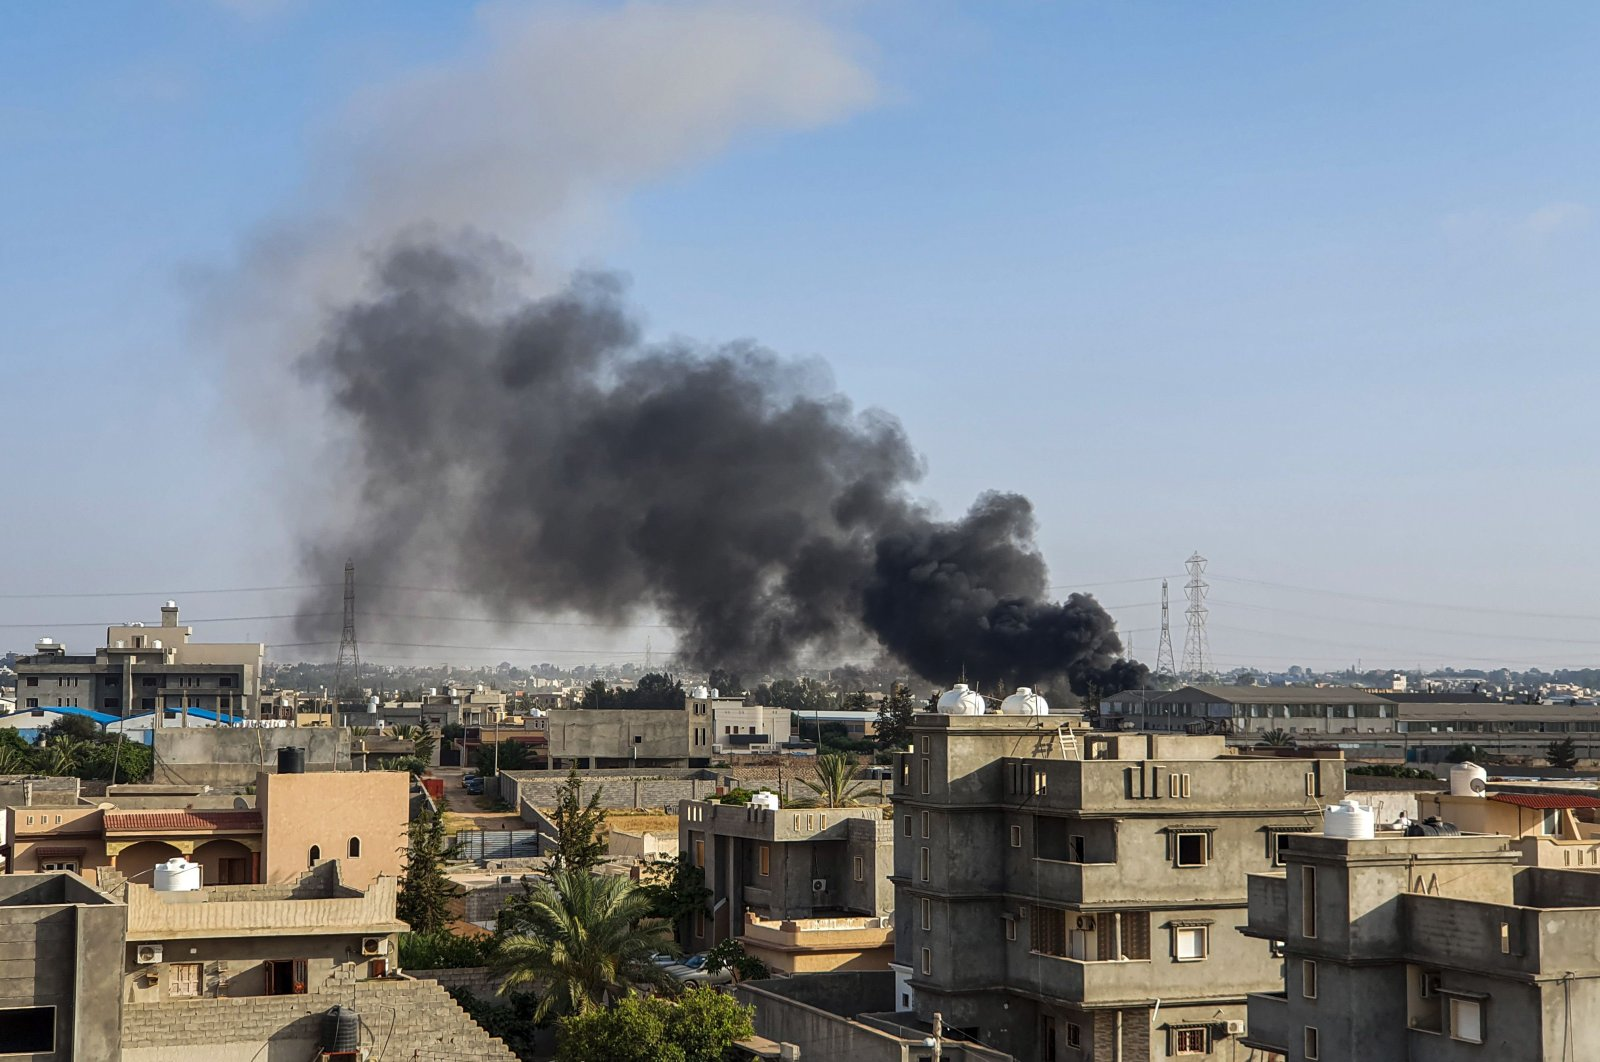 Smoke plumes rise following a reported airstrike by forces loyal to putschist Gen. Khalifa Haftar in Tajoura, south of Tripoli, Libya, June 29, 2019. (AFP Photo)